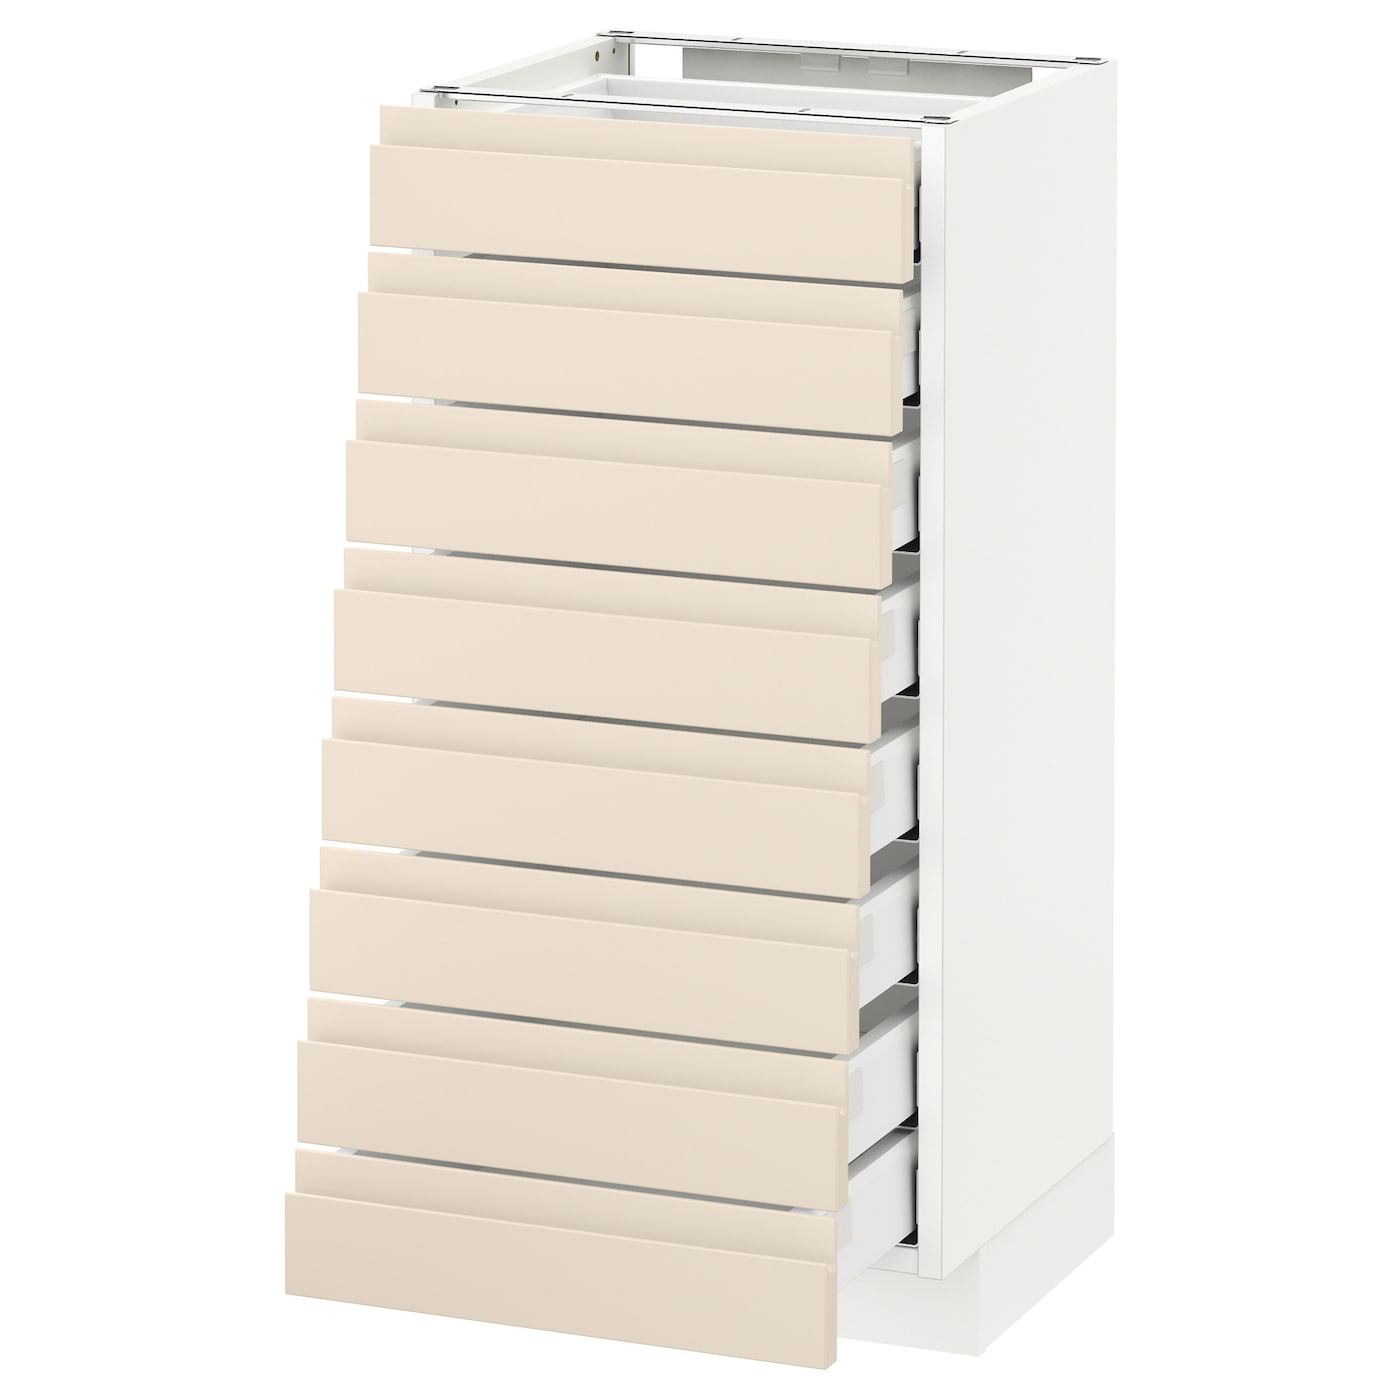 Metod Maximera Base Cabinet 8 Fronts 8 Low Drawers White Voxtorp Light Beige 40x37 Cm Ikea